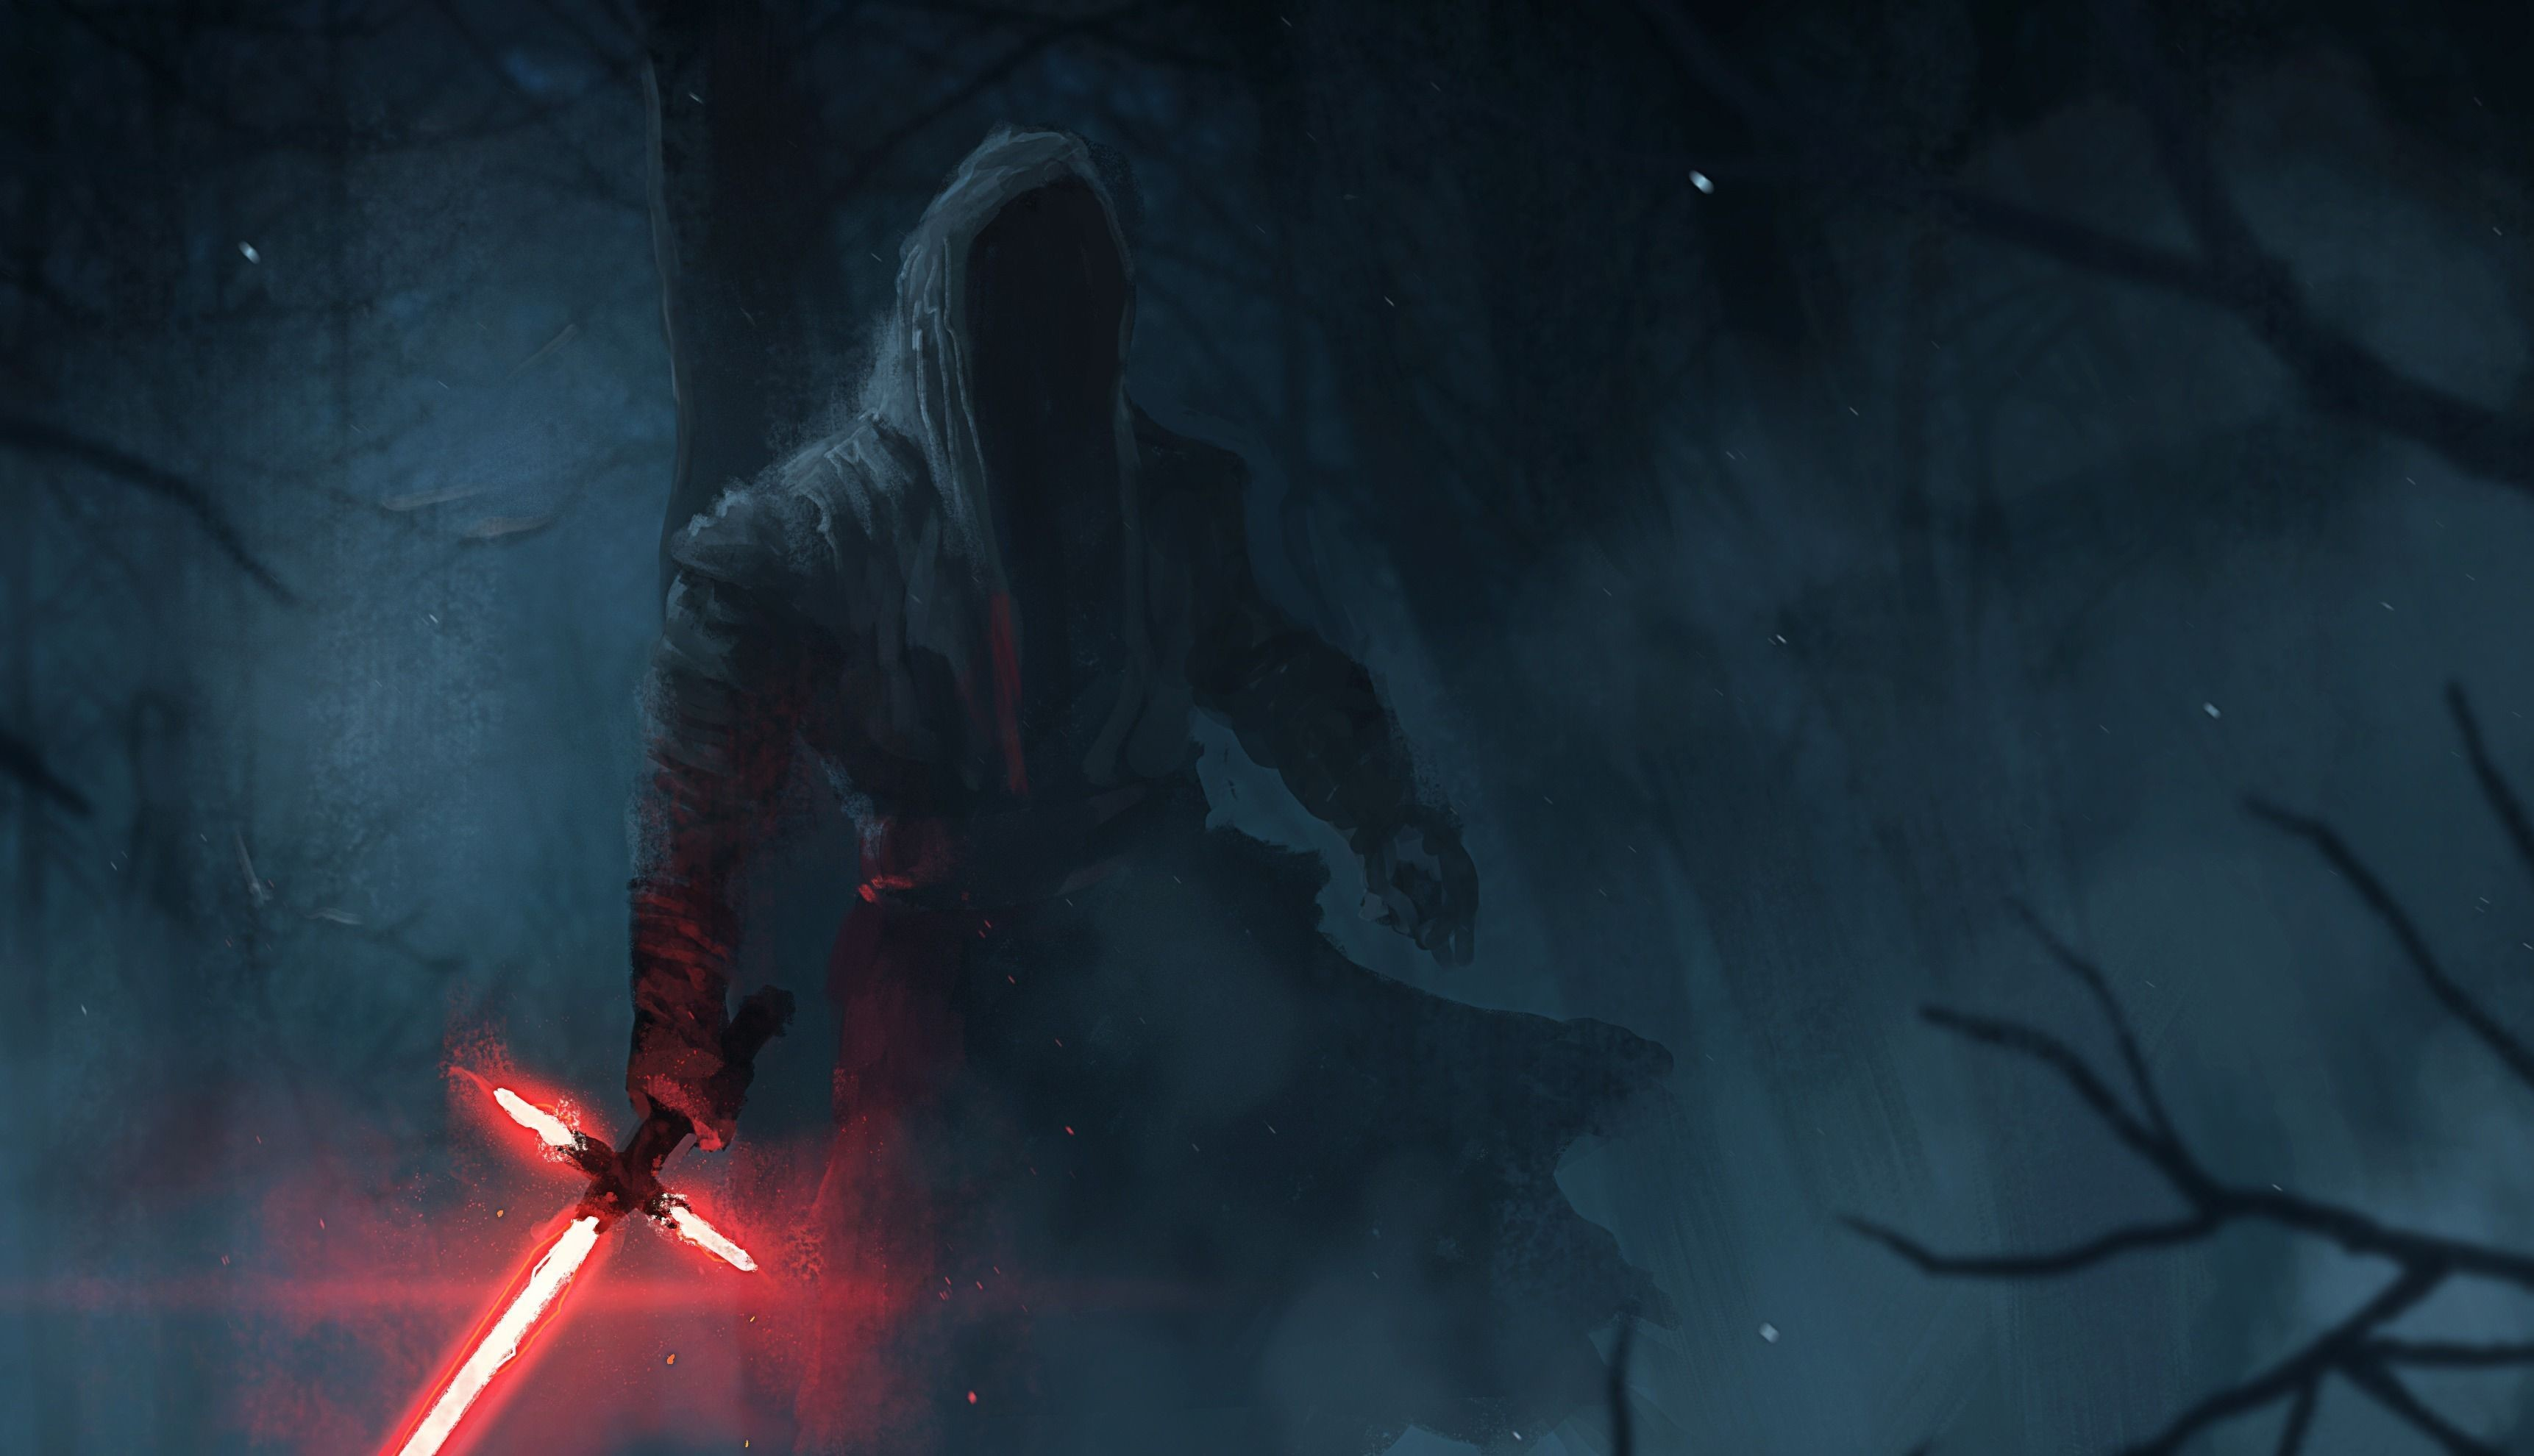 142 Star Wars Episode VII: The Force Awakens HD Wallpapers .